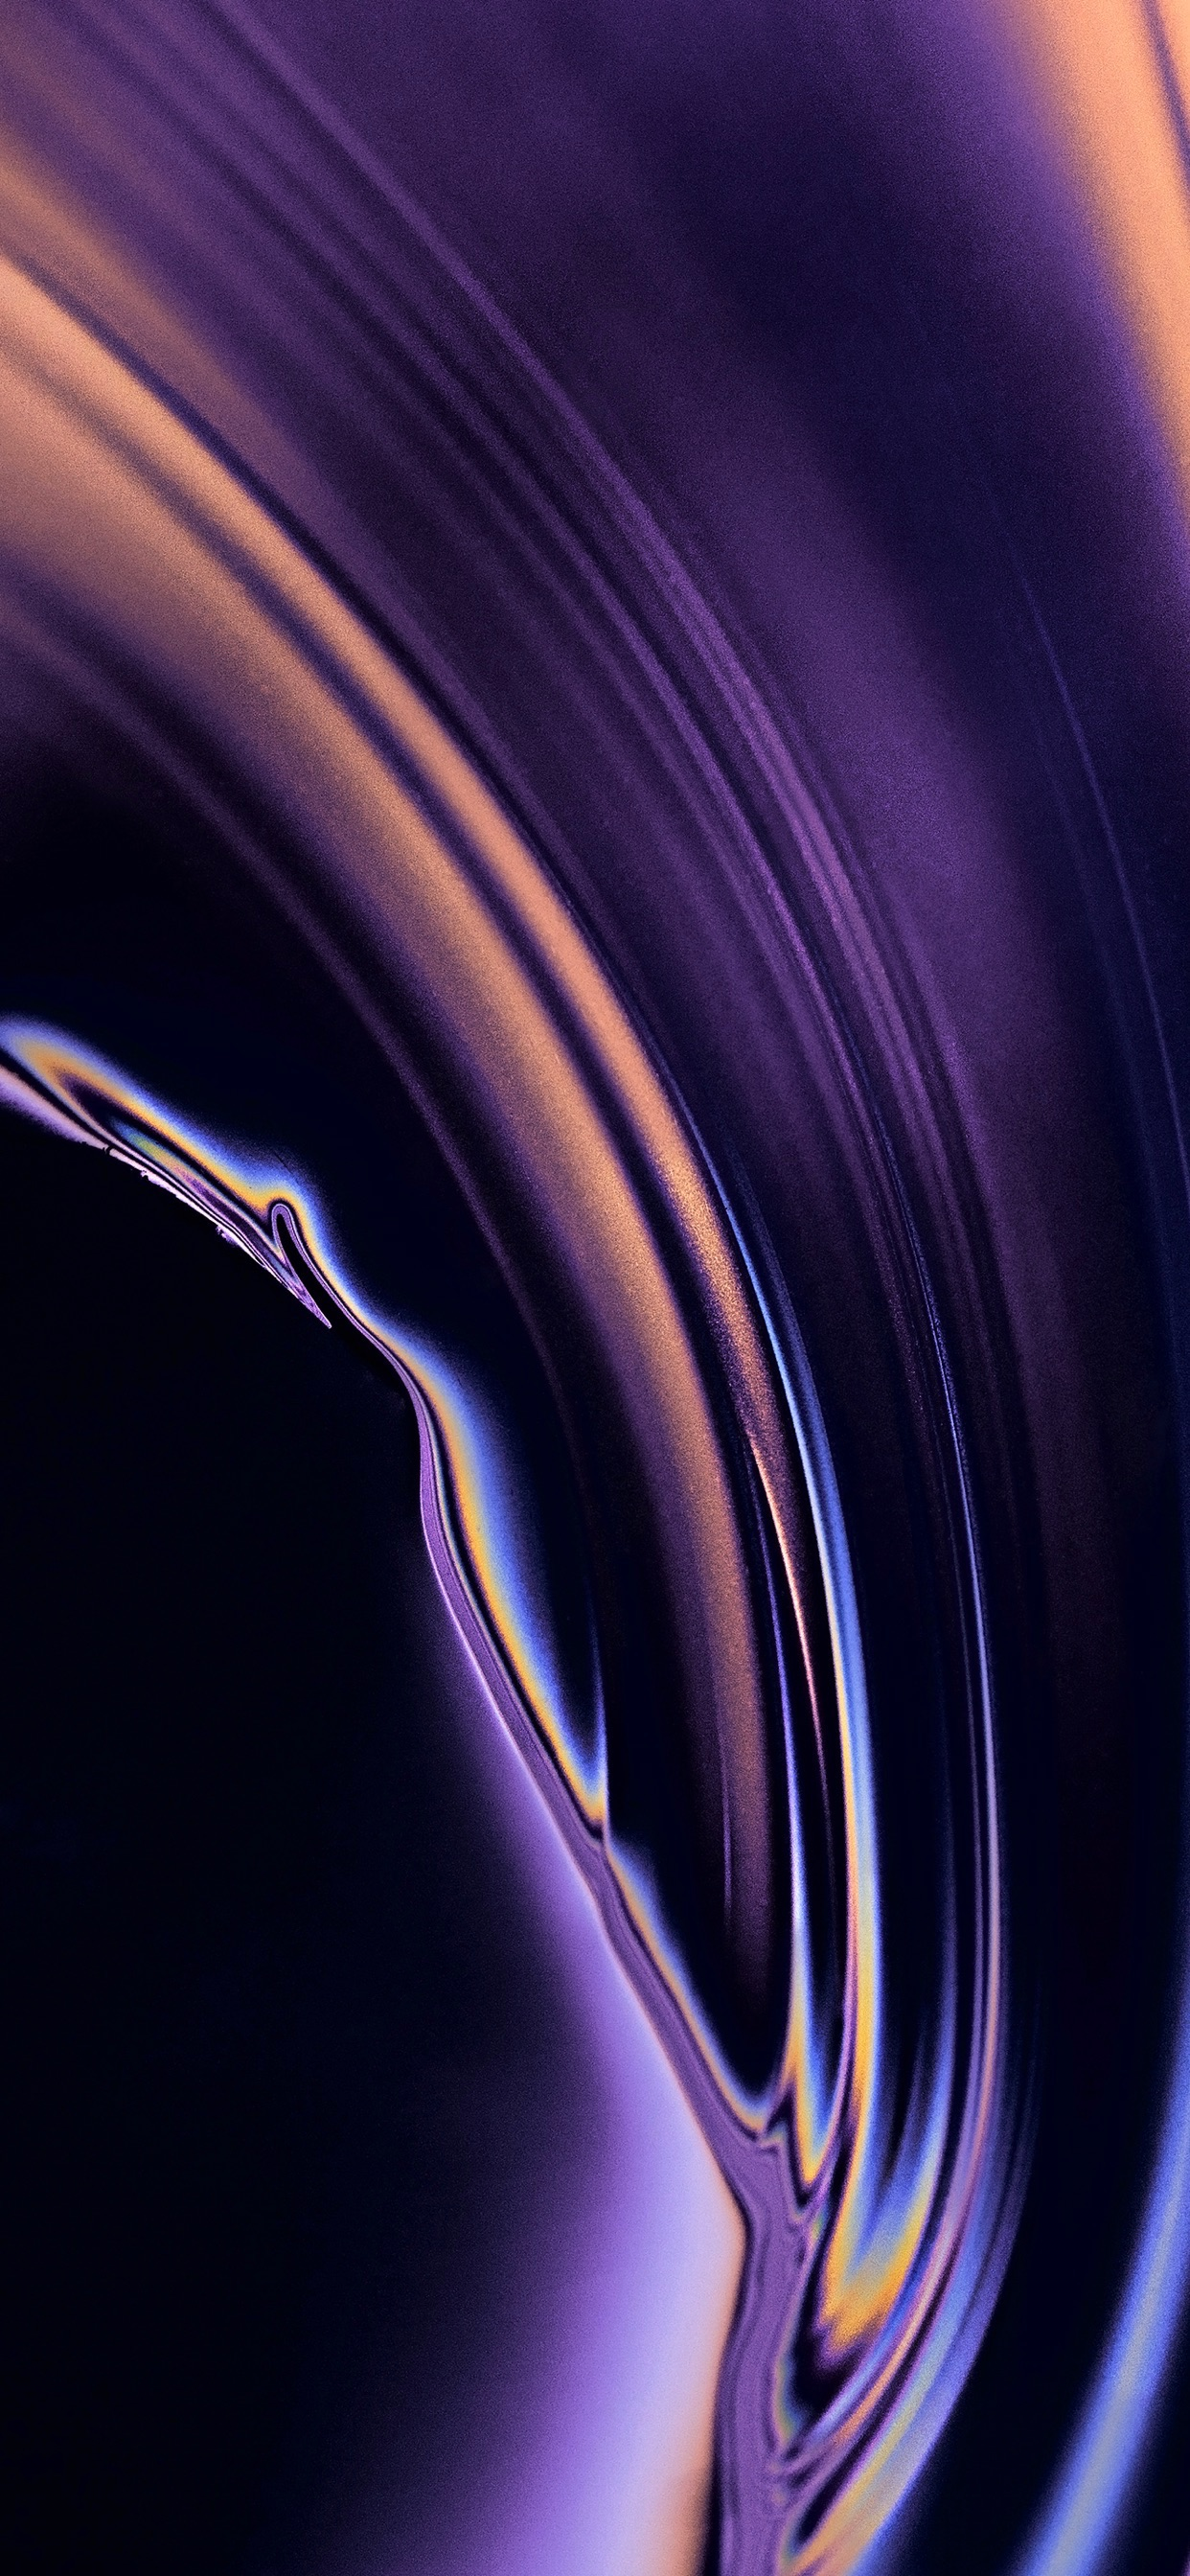 Wallpaper Weekends Abstract Iphone Wallpapers From The